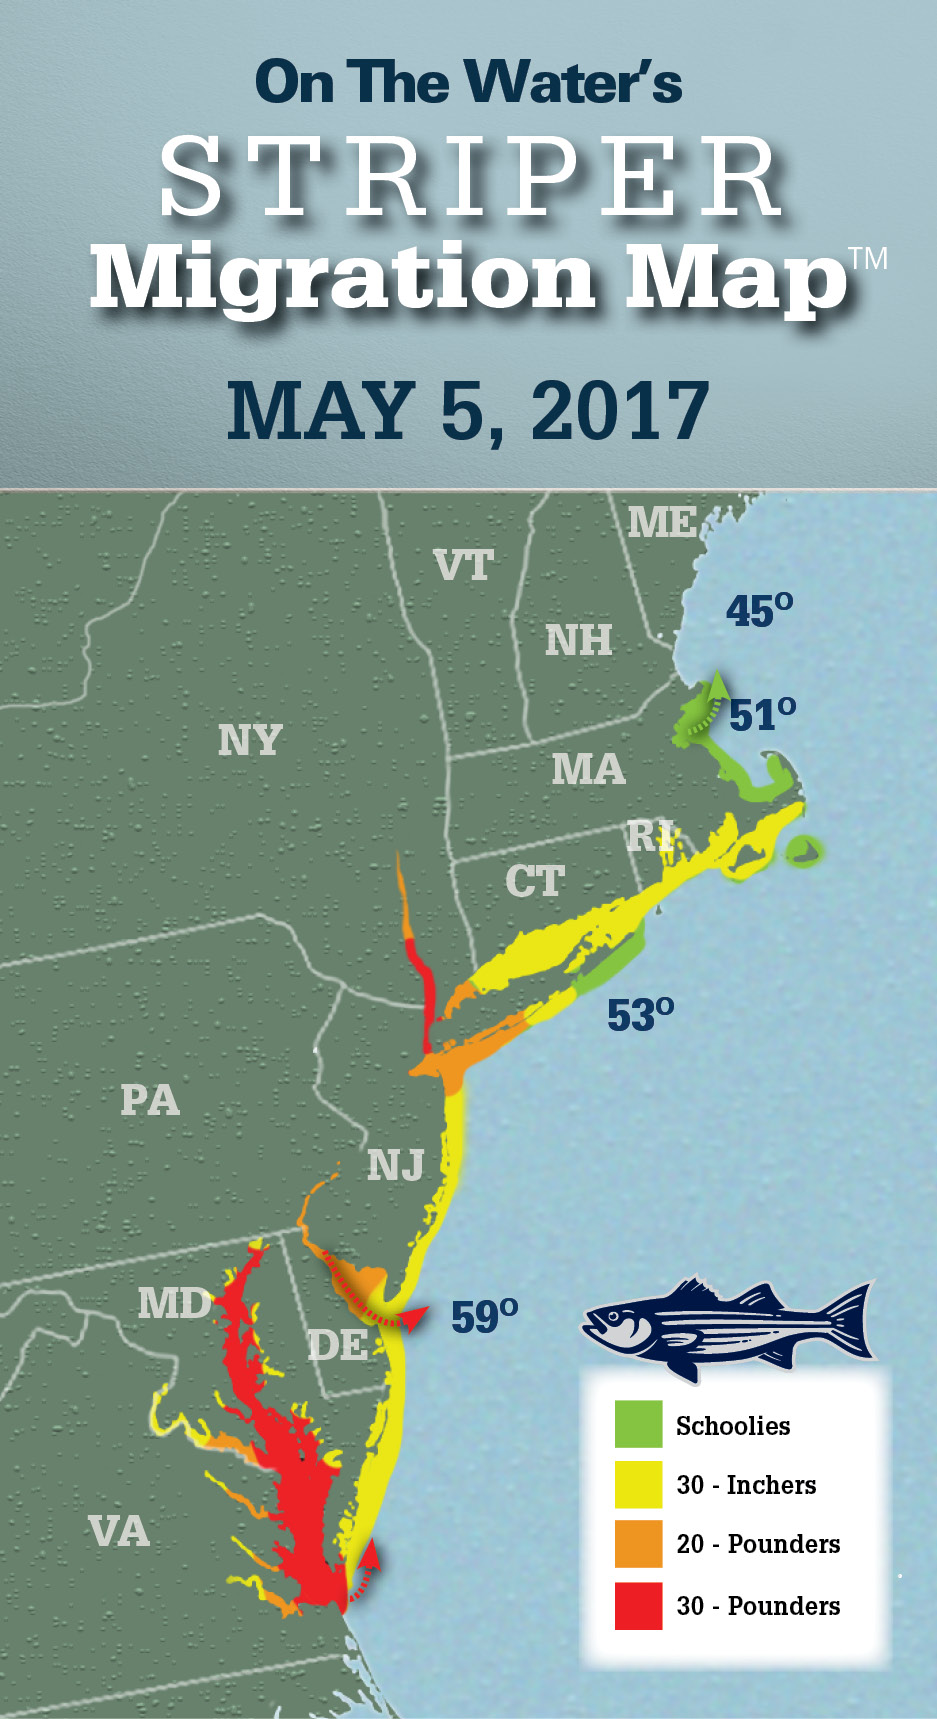 Striper migration map may 5 2017 on the water for Cod fishing ri